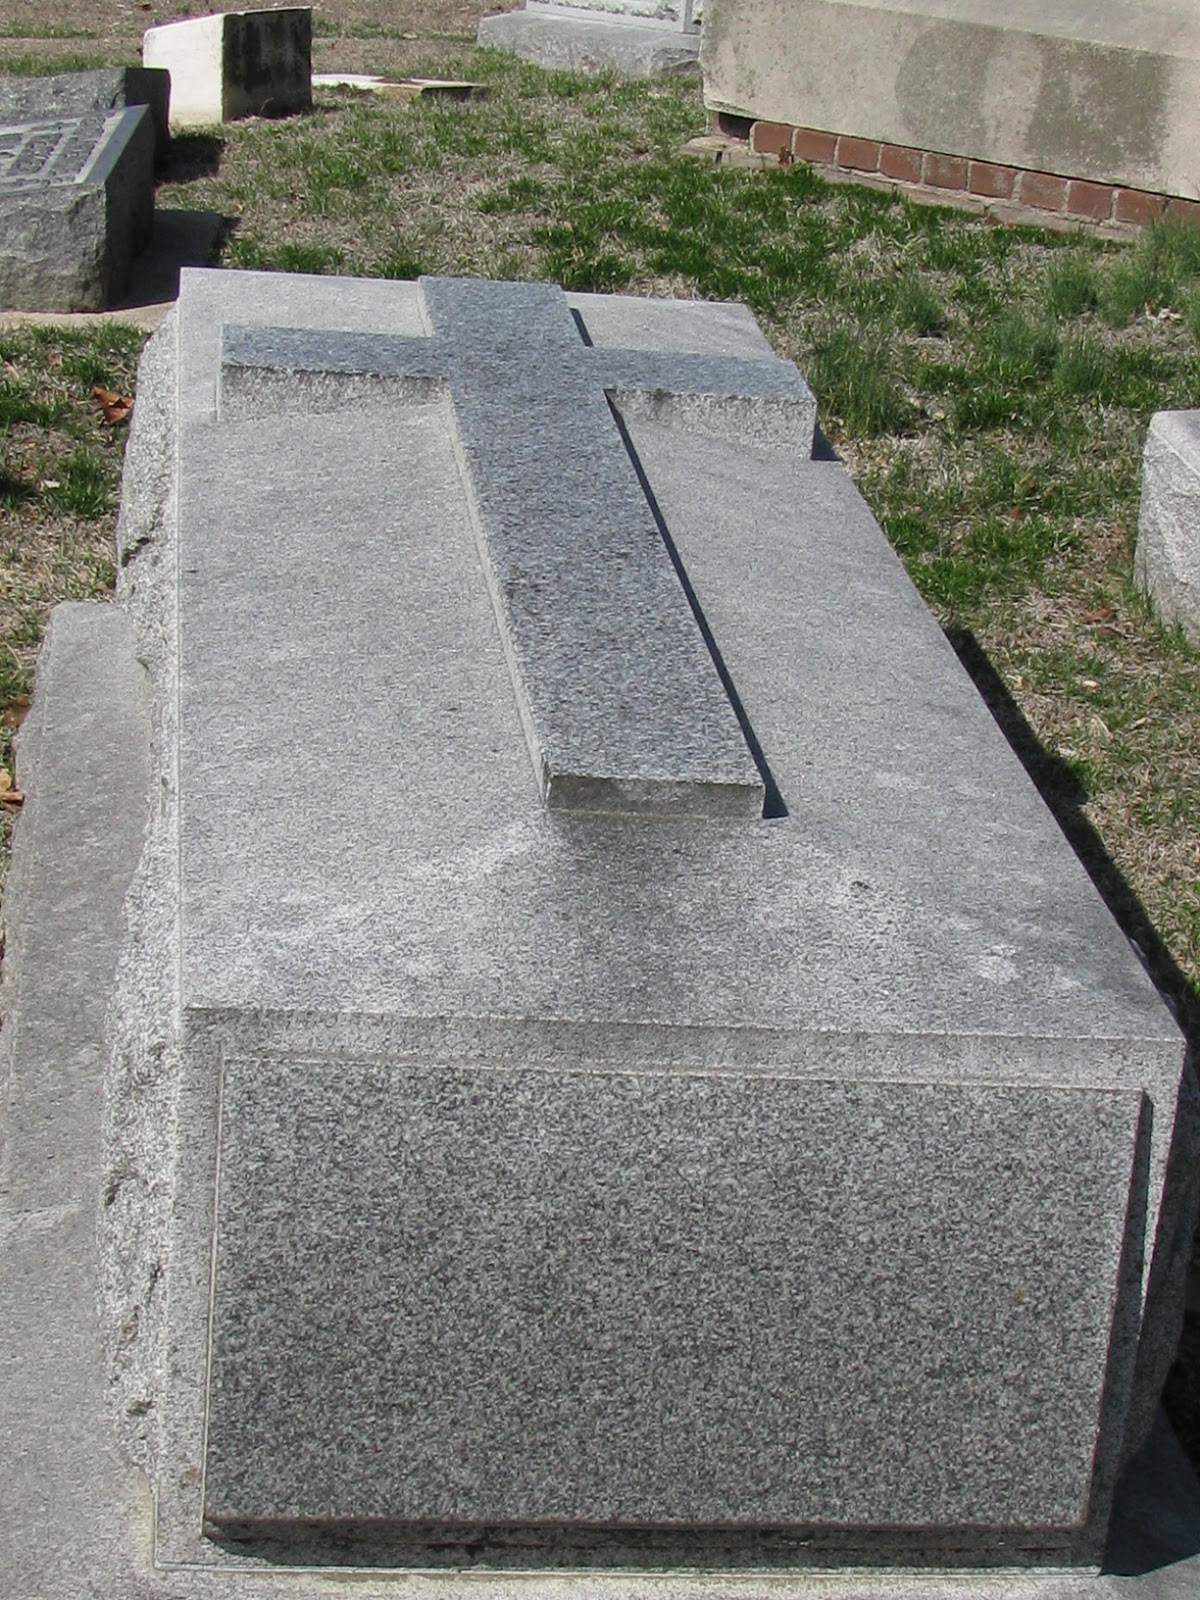 A Grave Interest: Mausoleums, Crypts, and Tombs (Oh My!)